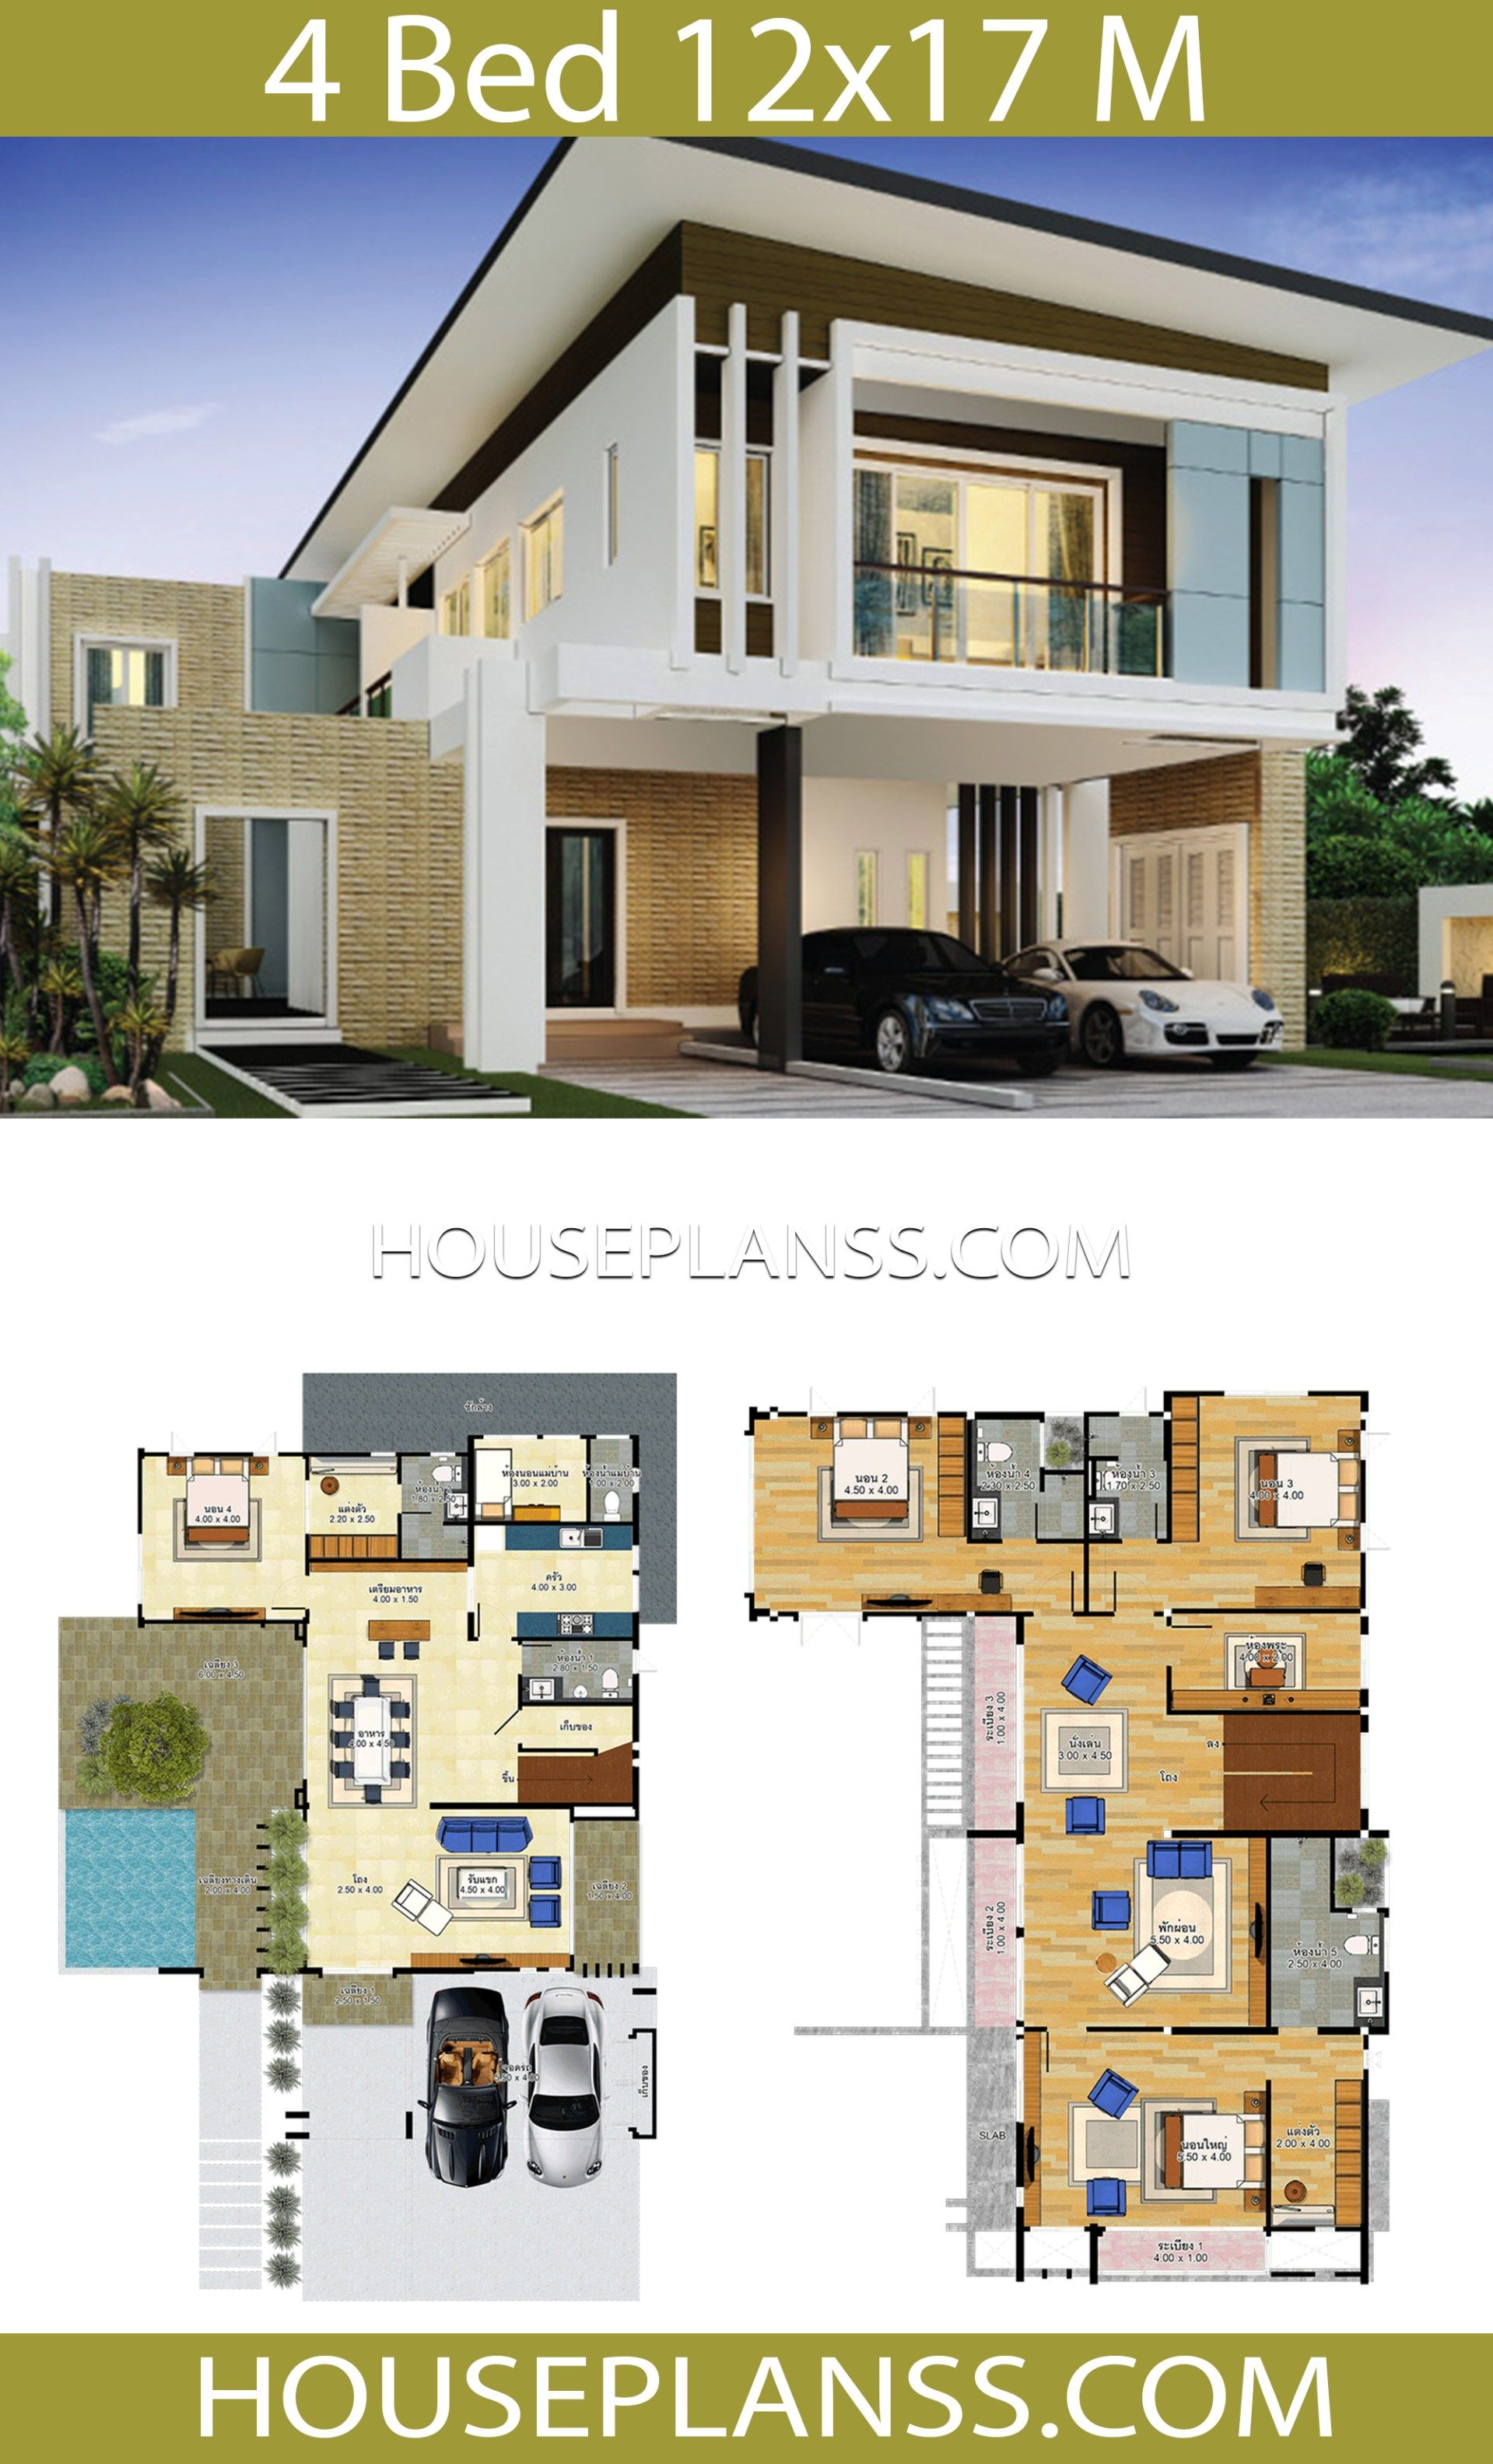 House Design Idea 12x17 With 4 Bedrooms House Plans 3d Model House Plan House Outside Design Small Modern House Plans